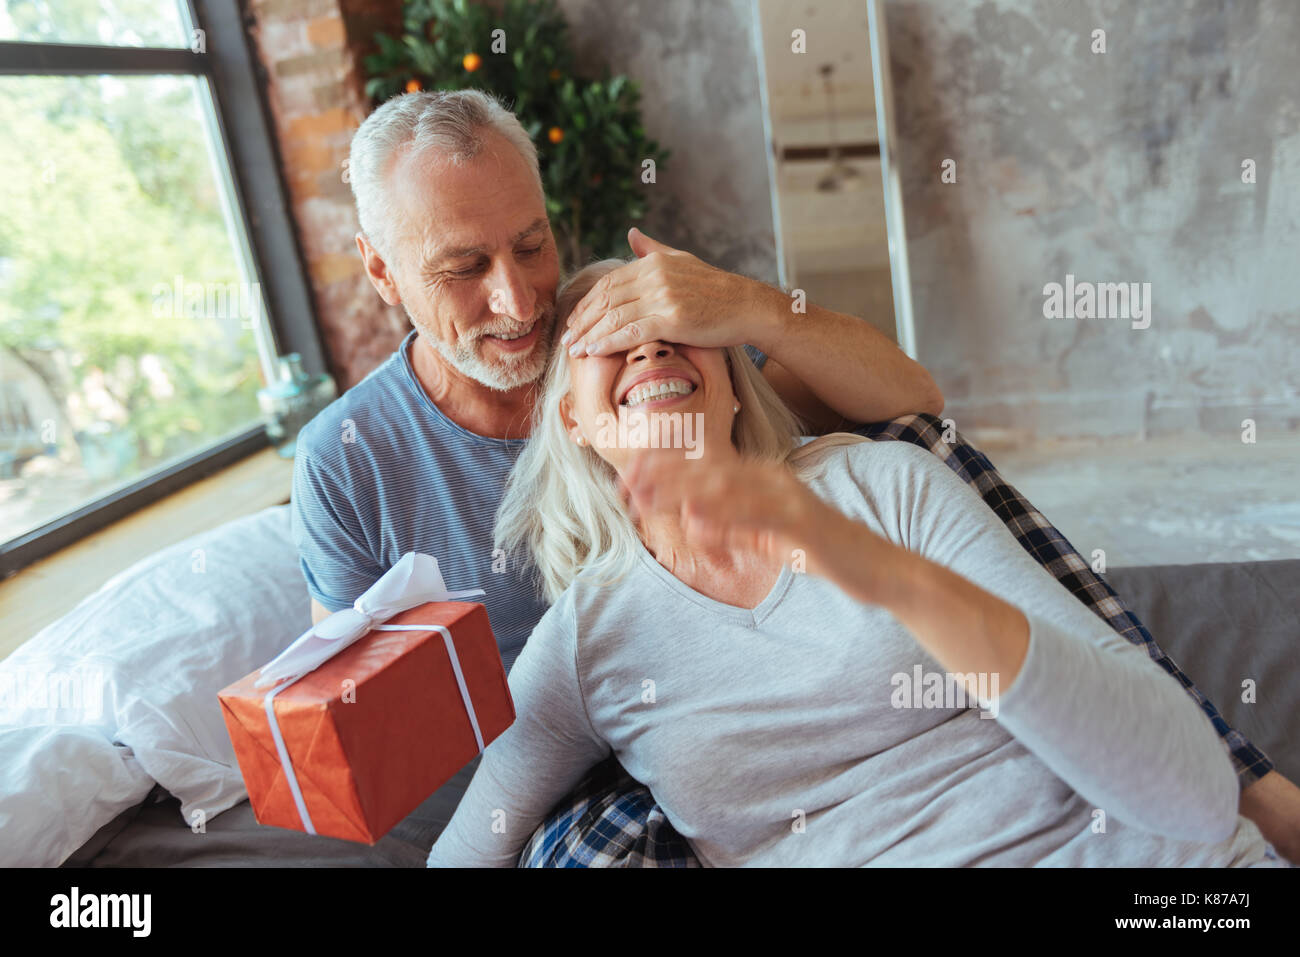 Loving aged man making a present for his wife - Stock Image